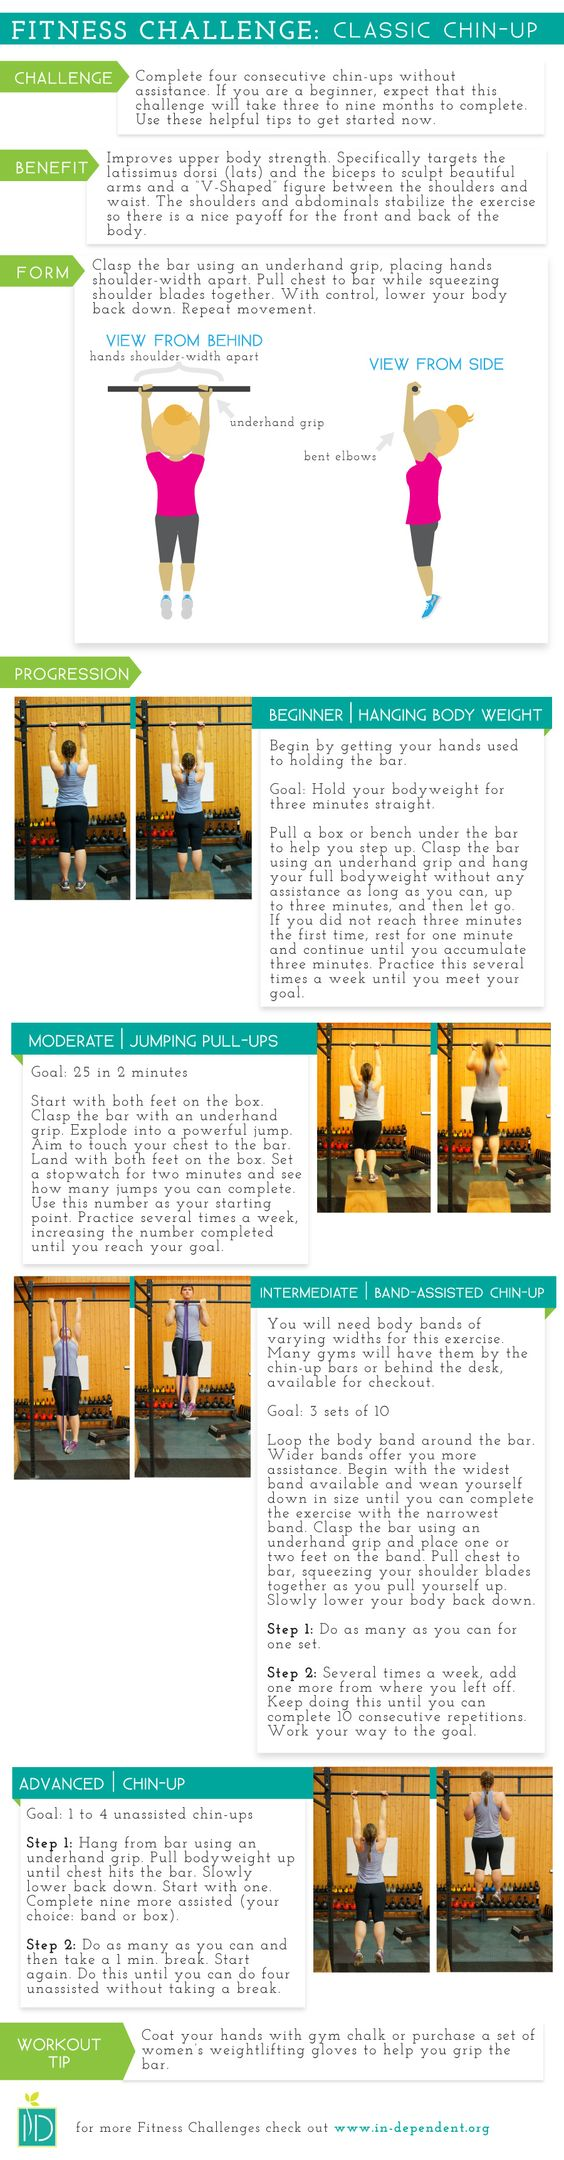 FITNESS CHALLENGE: CLASSIC CHIN-UP